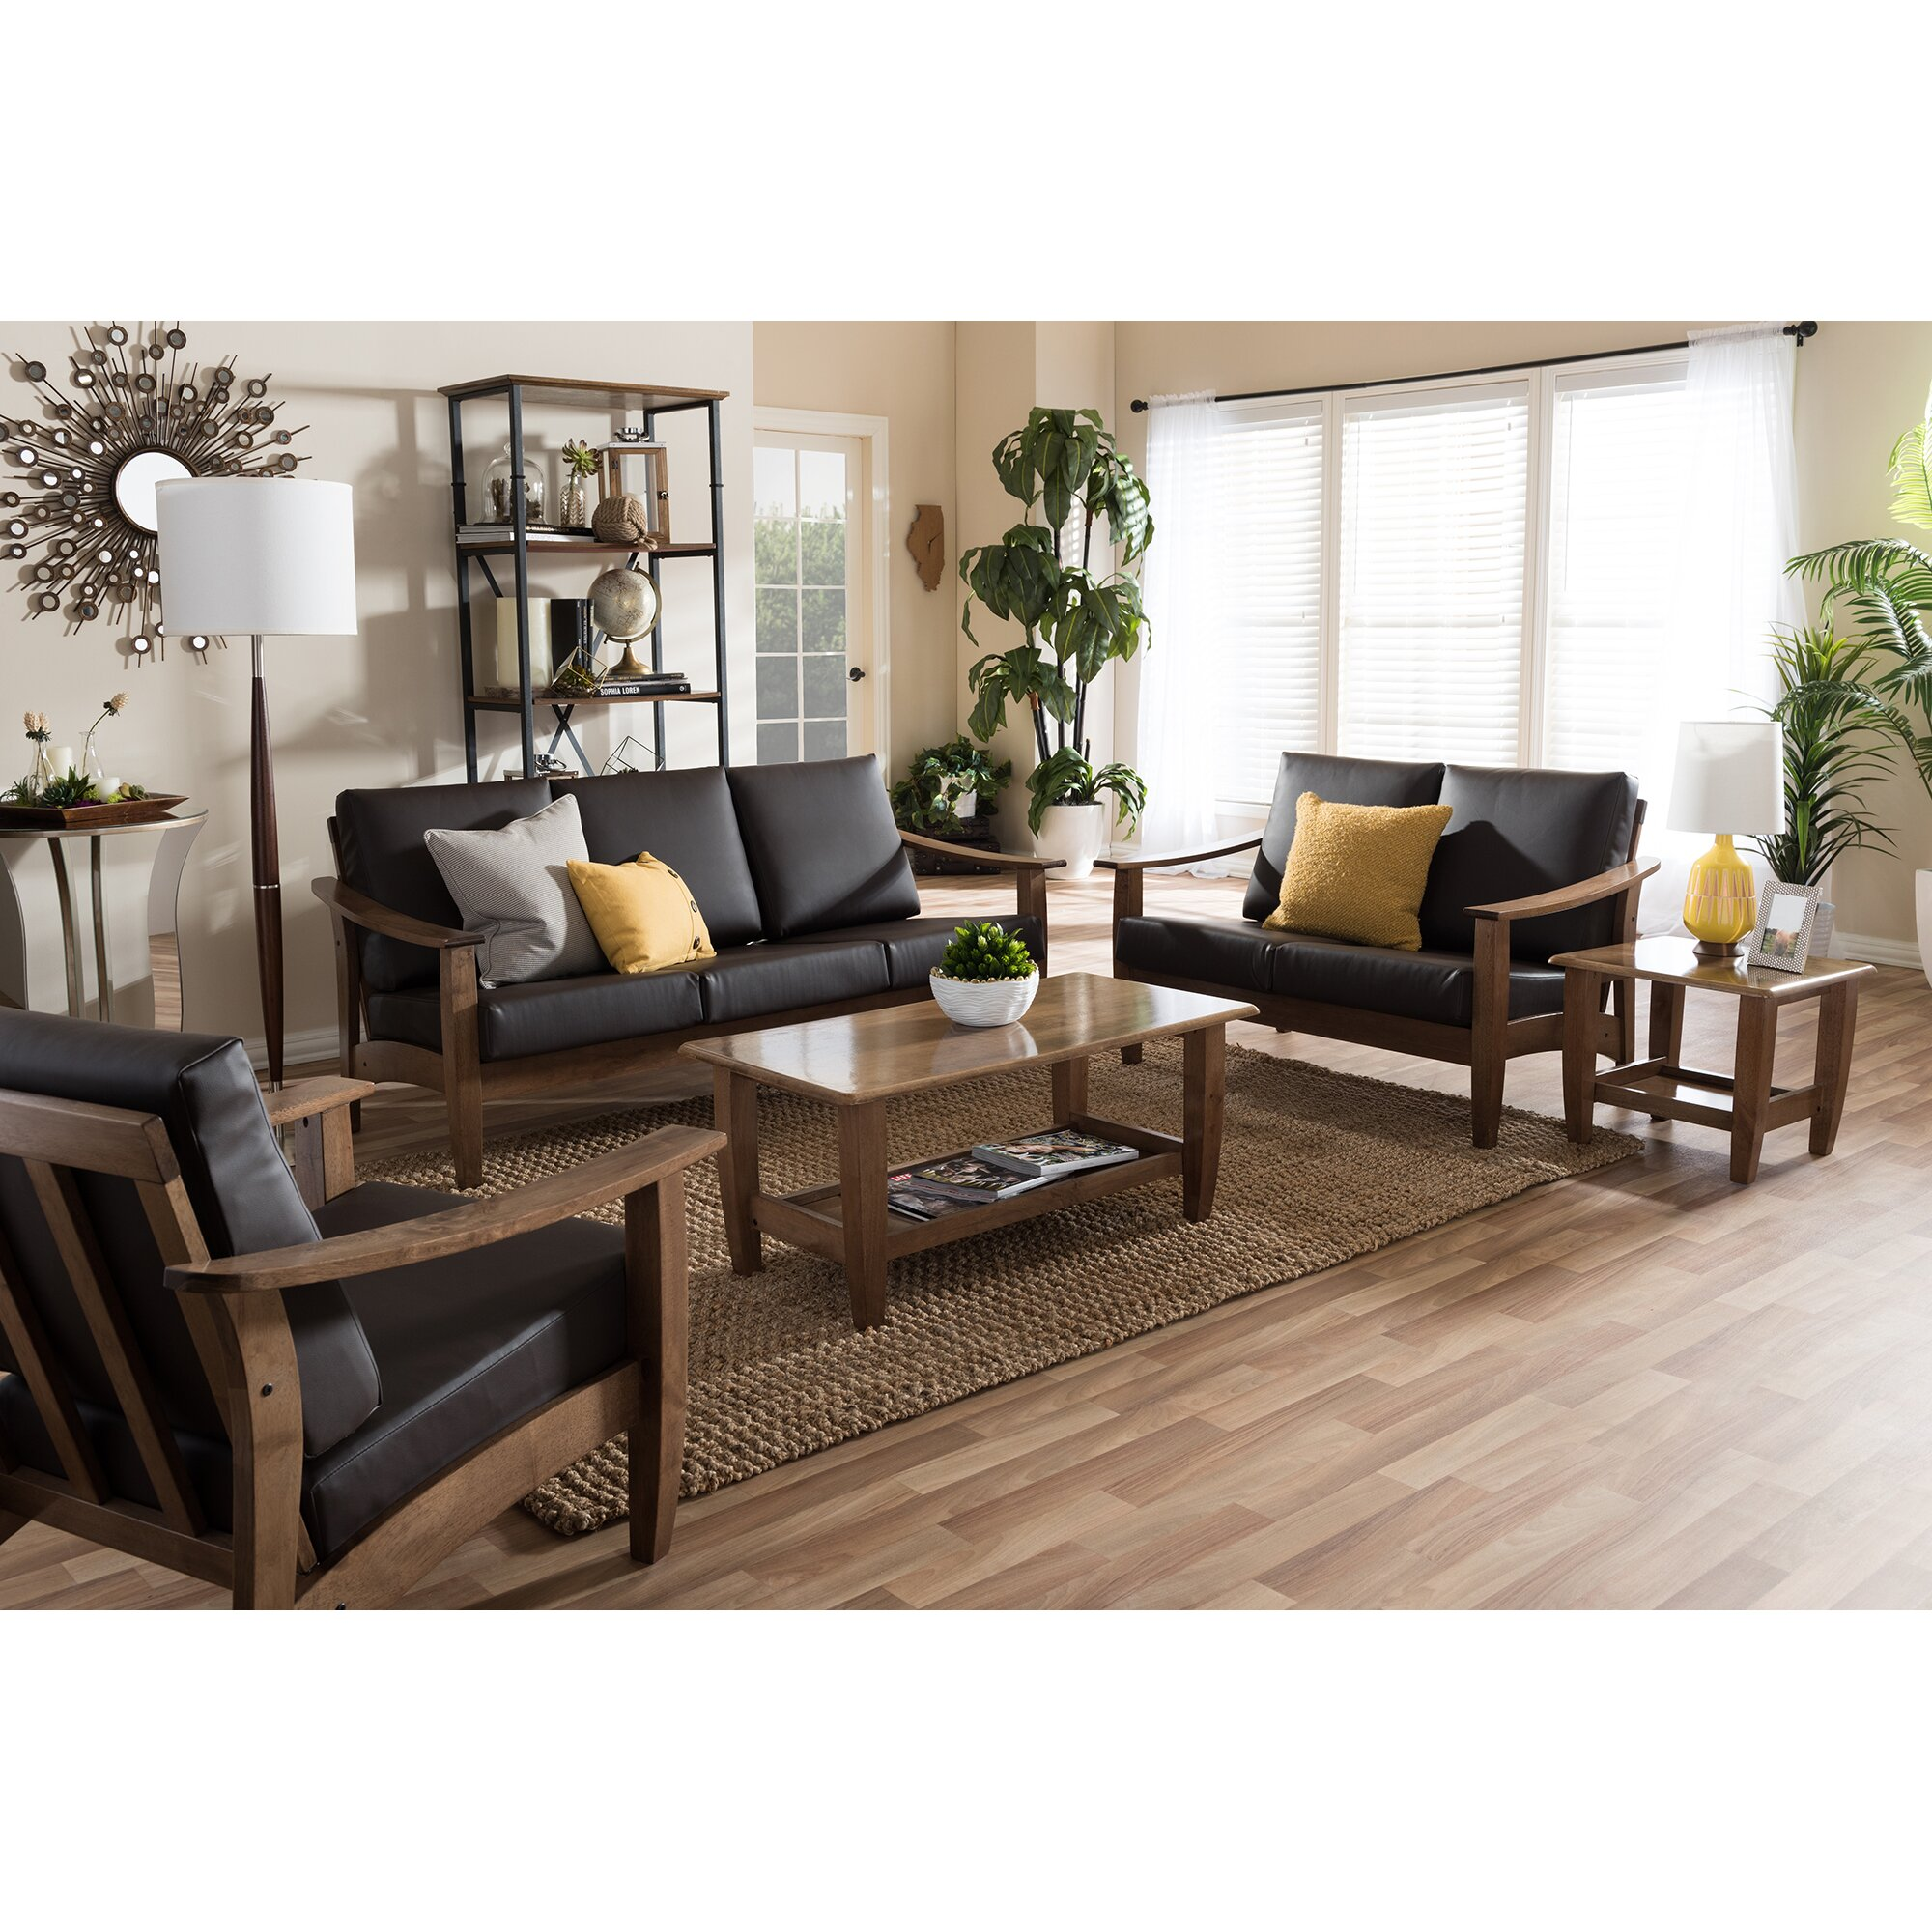 Ahart 5 piece living room set reviews allmodern for Living room 5 piece sets